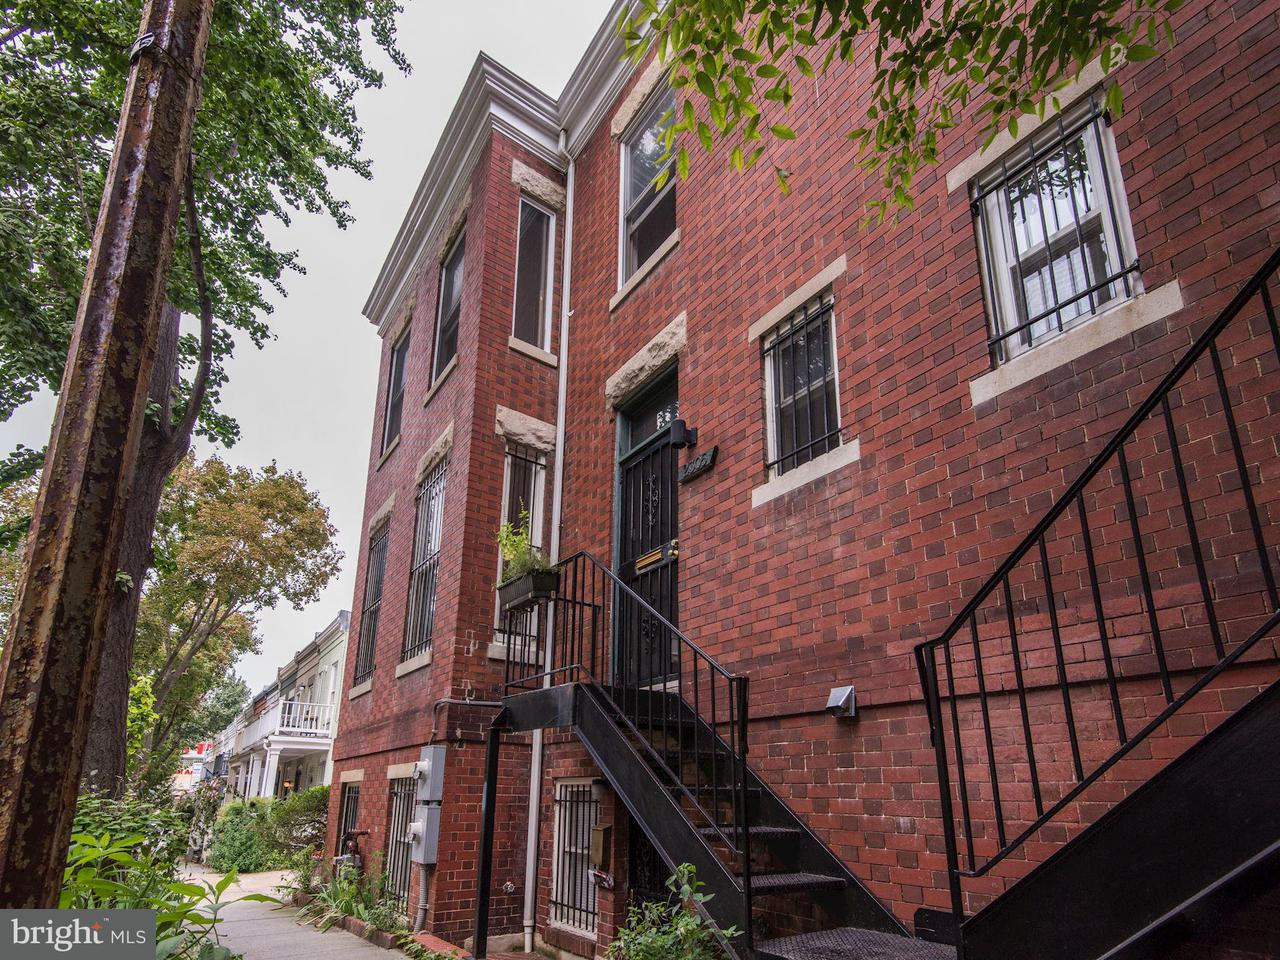 Townhouse for Sale at 2305 17th St Nw 2305 17th St Nw Washington, District Of Columbia 20009 United States